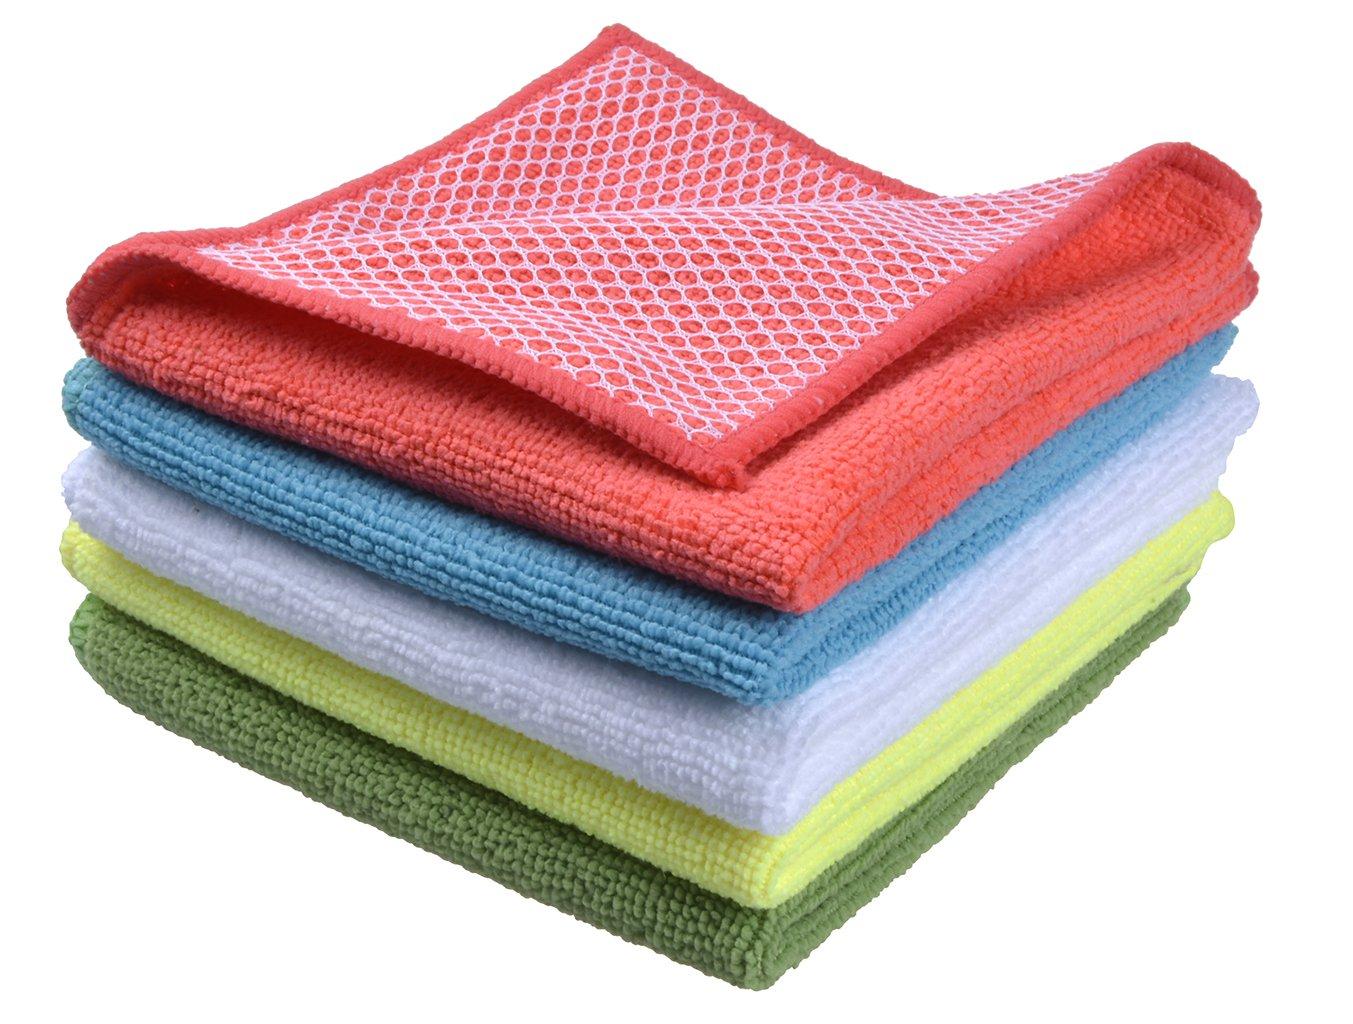 Microfiber 30cm x 30cm Dish Cloth Kitchen Cloths With Poly Scour Side 5 Pack Sinland